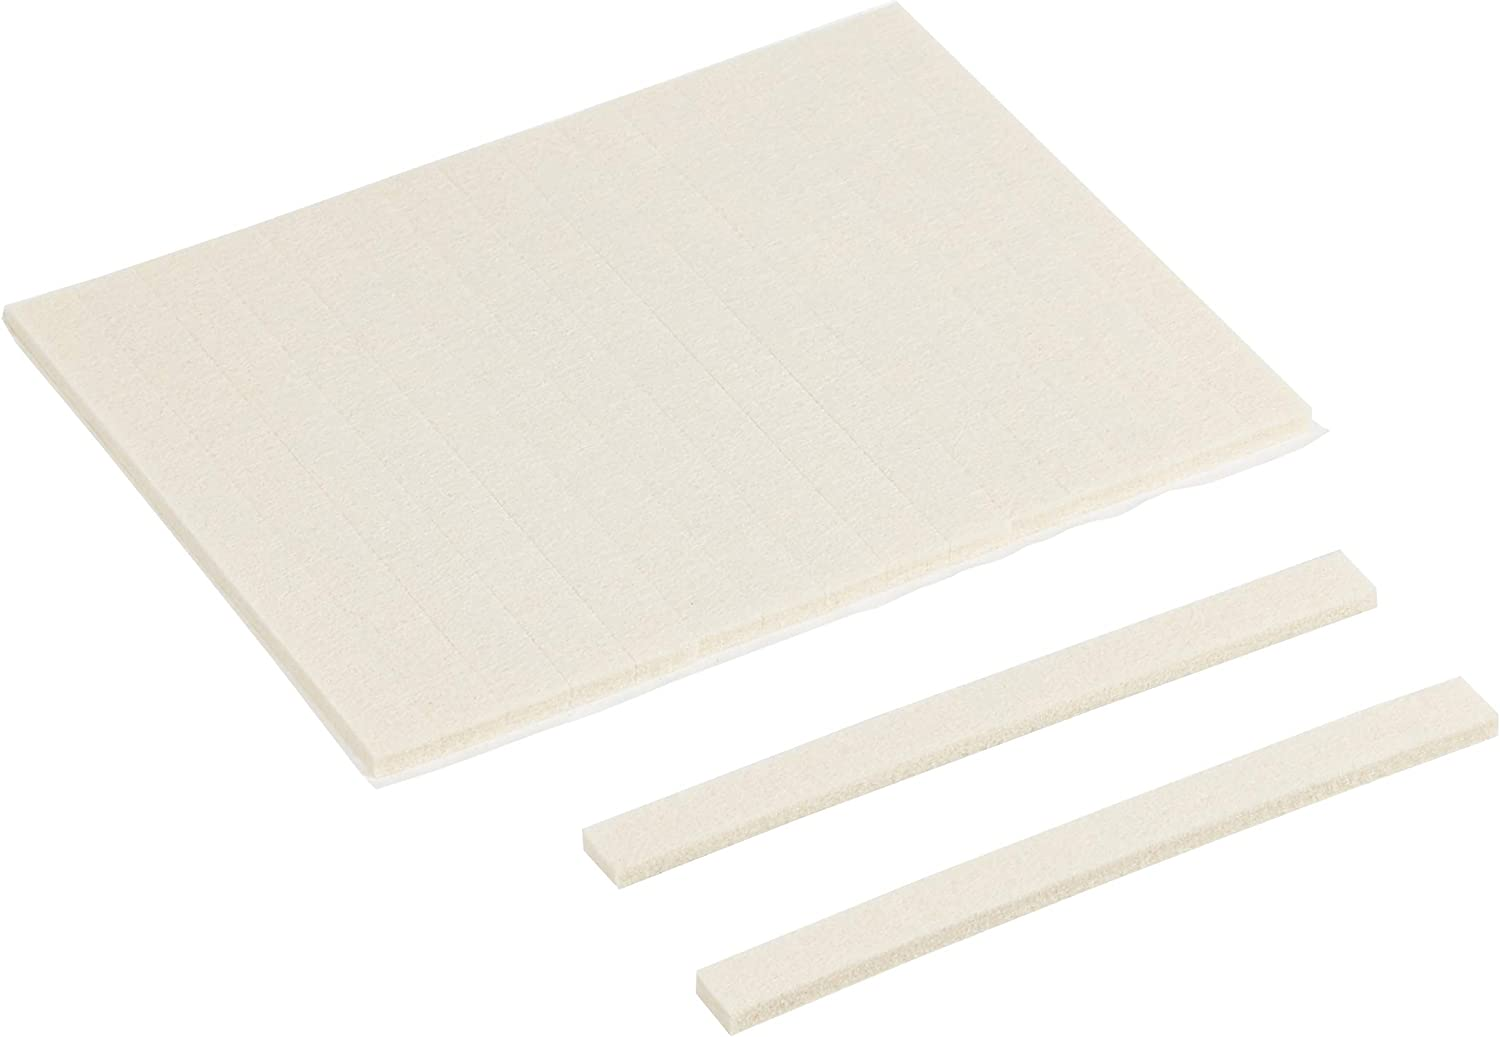 AmazonBasics Felt Furniture Pads - 1/2'' x 6'' Square, Beige, 60-Pack